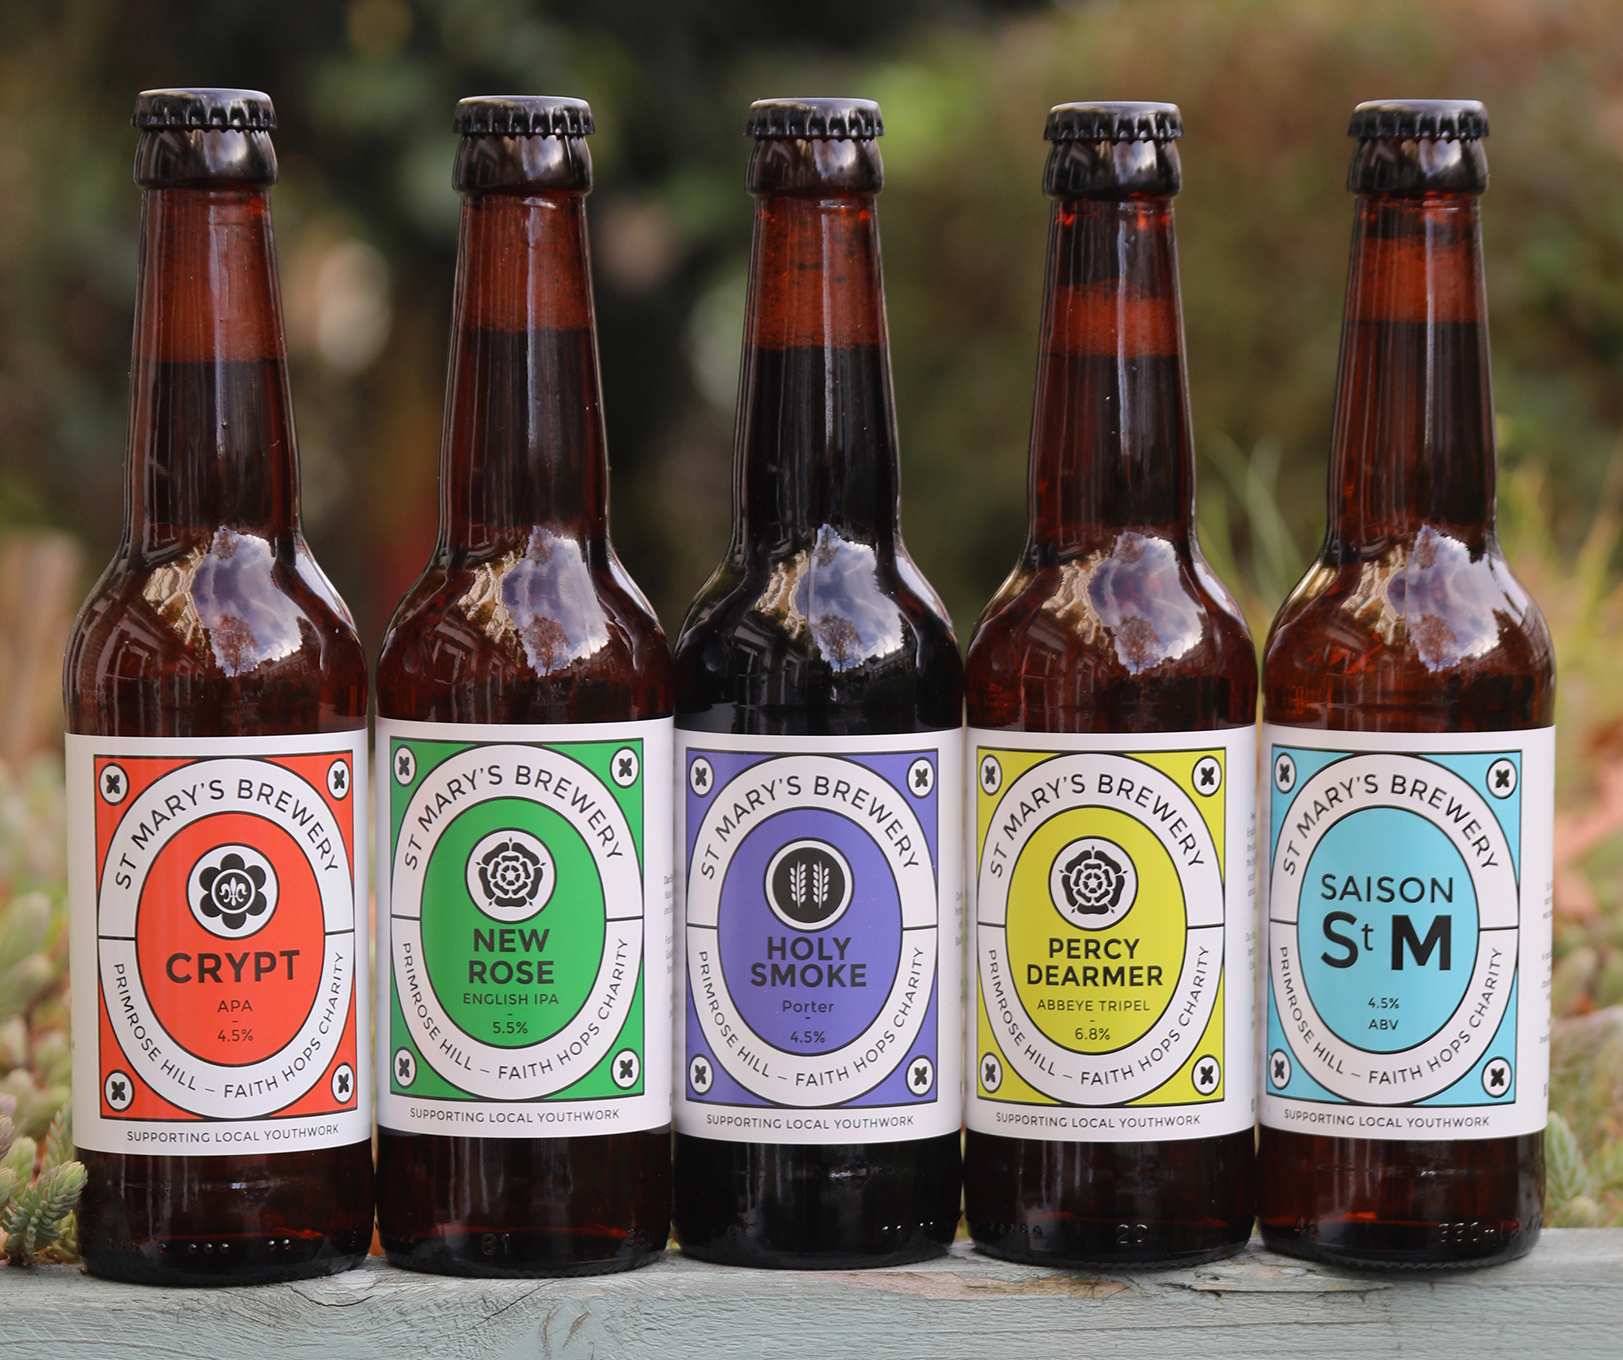 St. Mary's Brewery - We started St Mary's Brewery in 2016 based on three passions: A passion for great beerA passion to build a thriving communityA passion for the youth work of St Mary's Primrose Hill